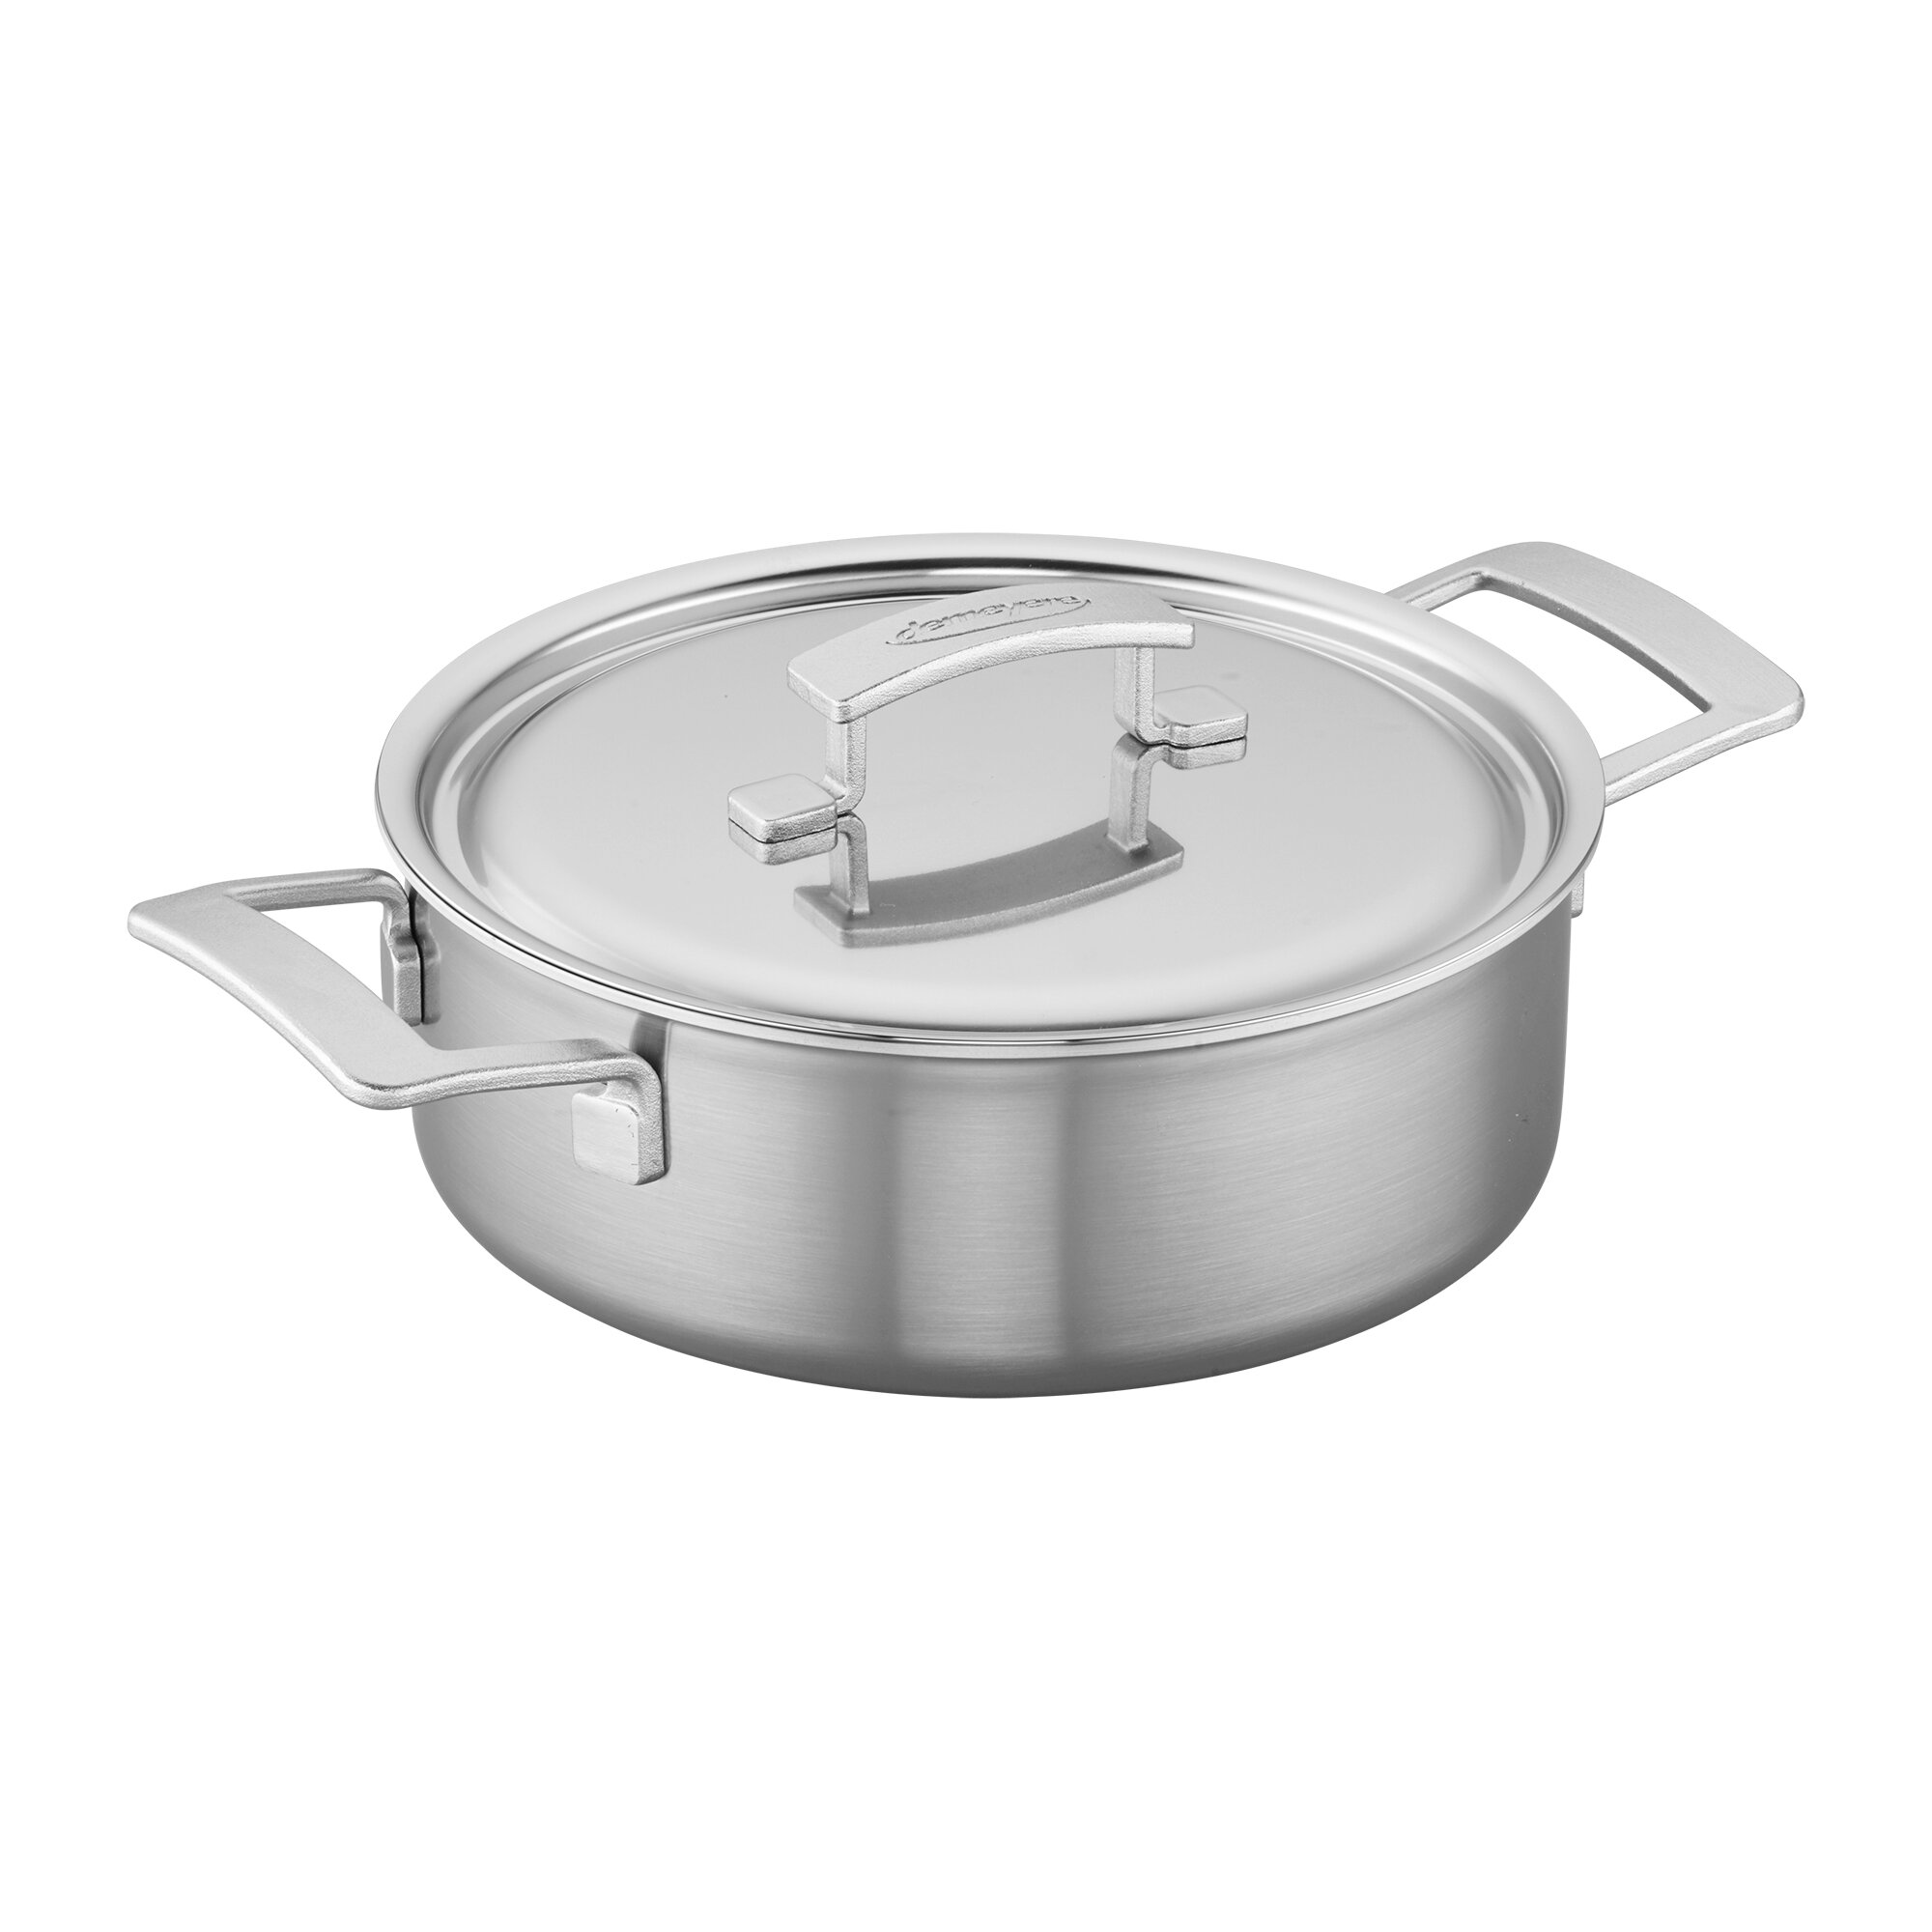 Demeyere Industry 4 Qt Stainless Steel Deep Paella Pan With Lid